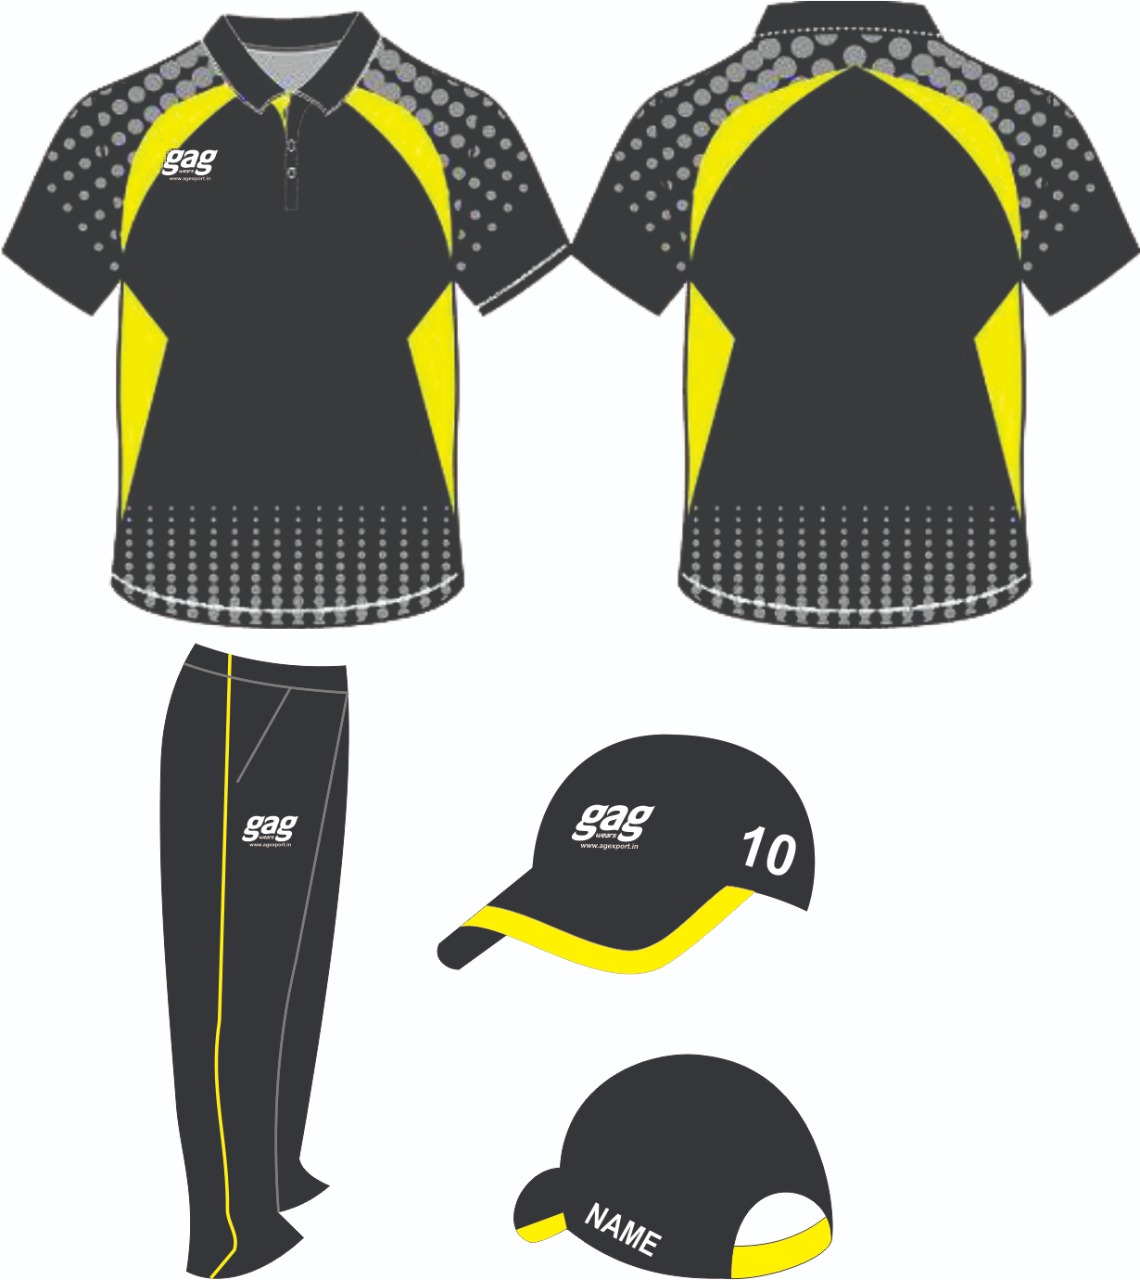 Cricket Uniform Manufacturers and Exporters in Haryana